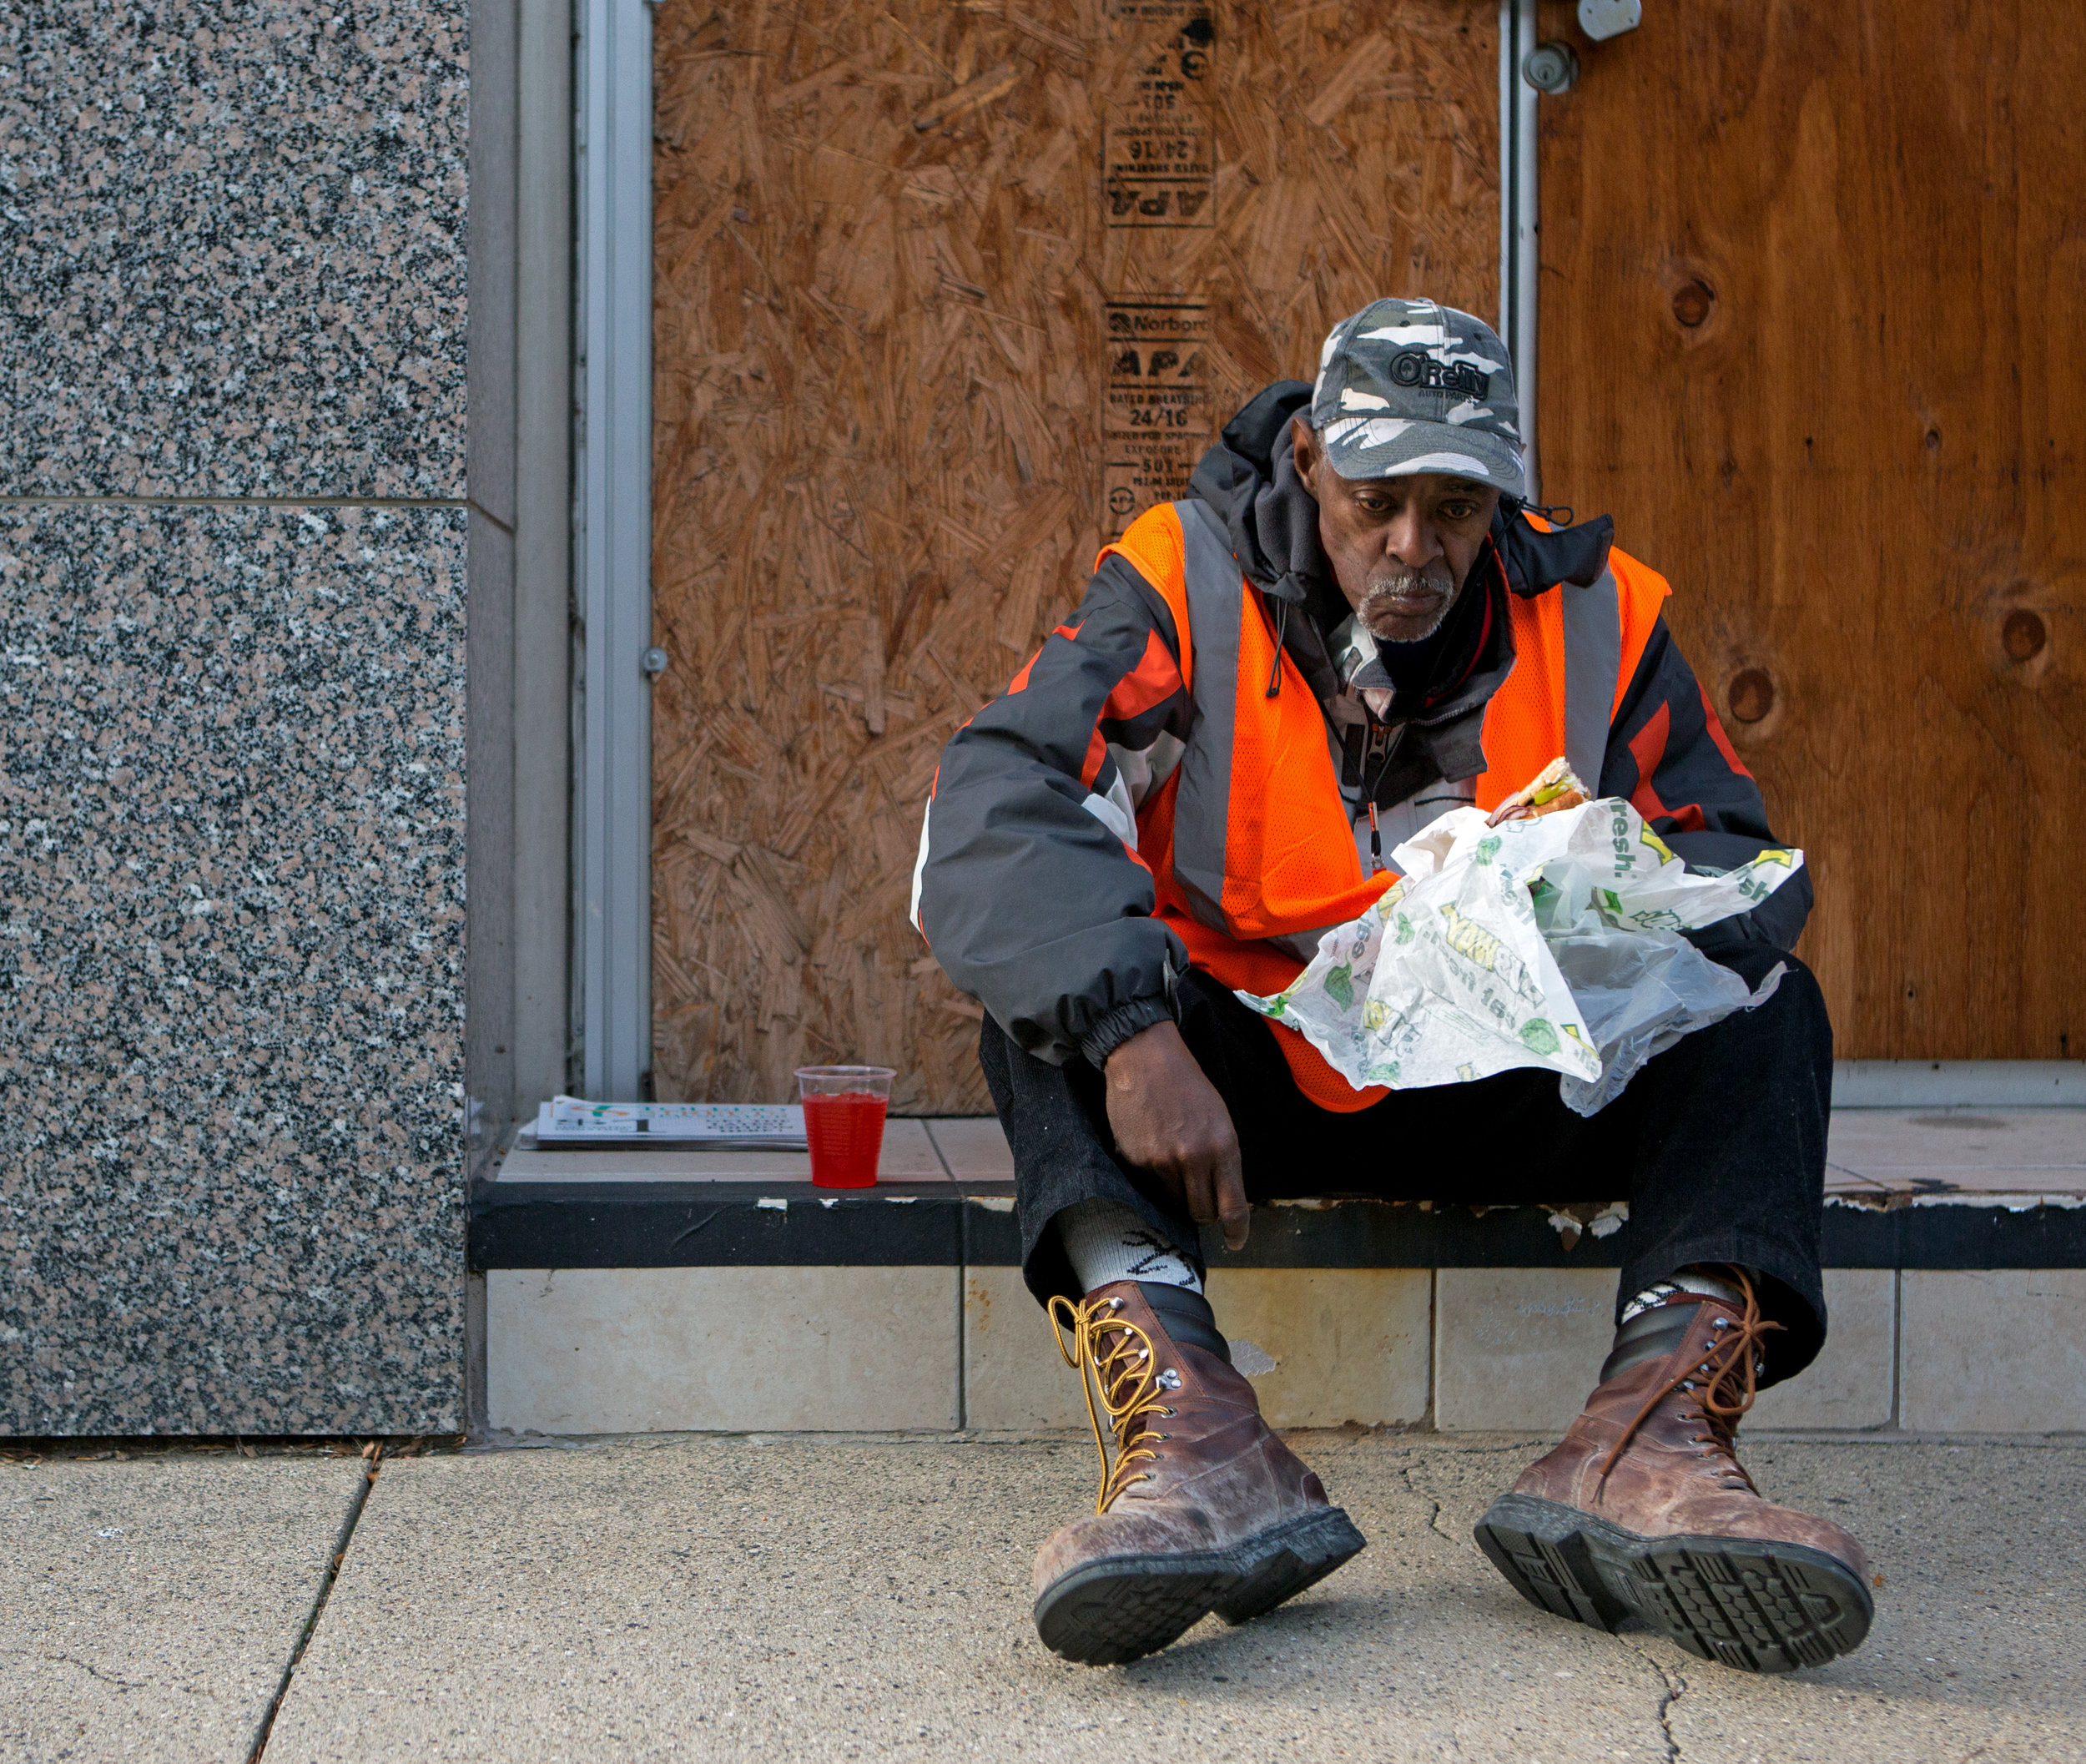 Ron Gage eats a sandwich on a step of a building on Superior St. while selling Toledo Streets Newspapers in downtown Toledo on Monday, Nov. 14, 2016. Gage sells the papers so that he can earn enough throughout the day for a bus token to his other job in West Toledo.